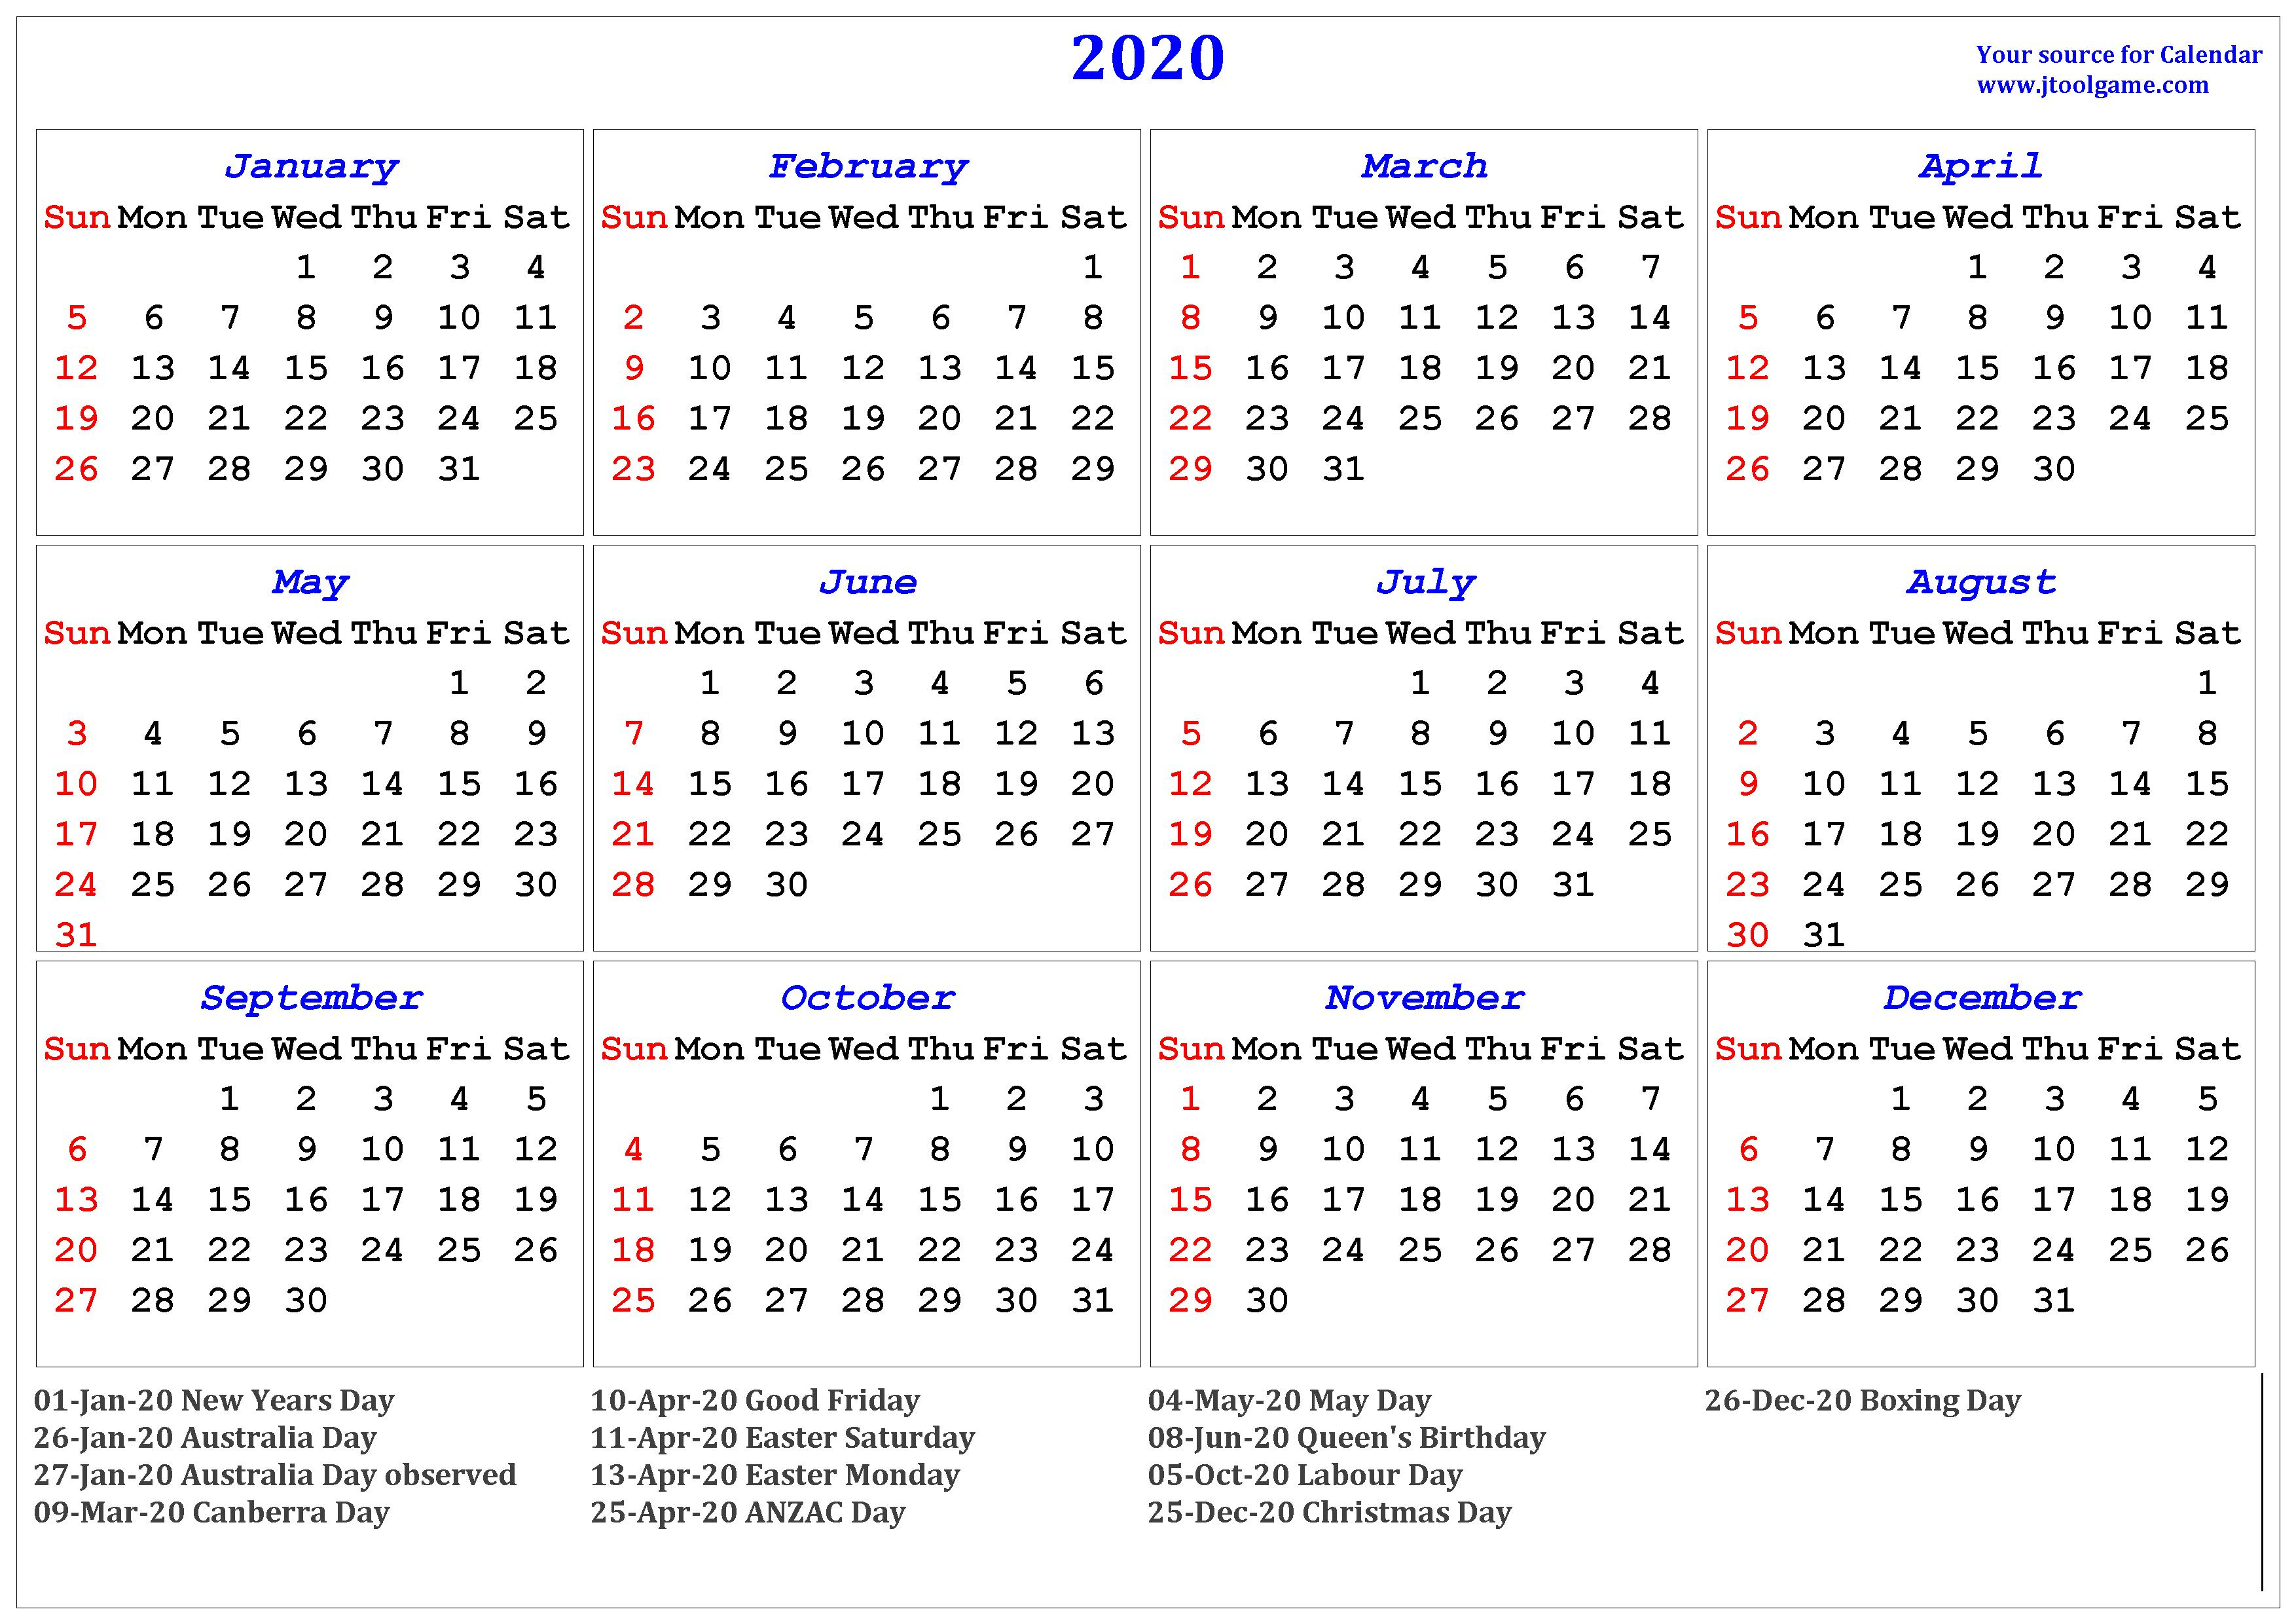 2020 Calendar - Printable Calendar. 2020 Calendar In Multiple Colors for 2020 Calendar Sunday Through Saturday